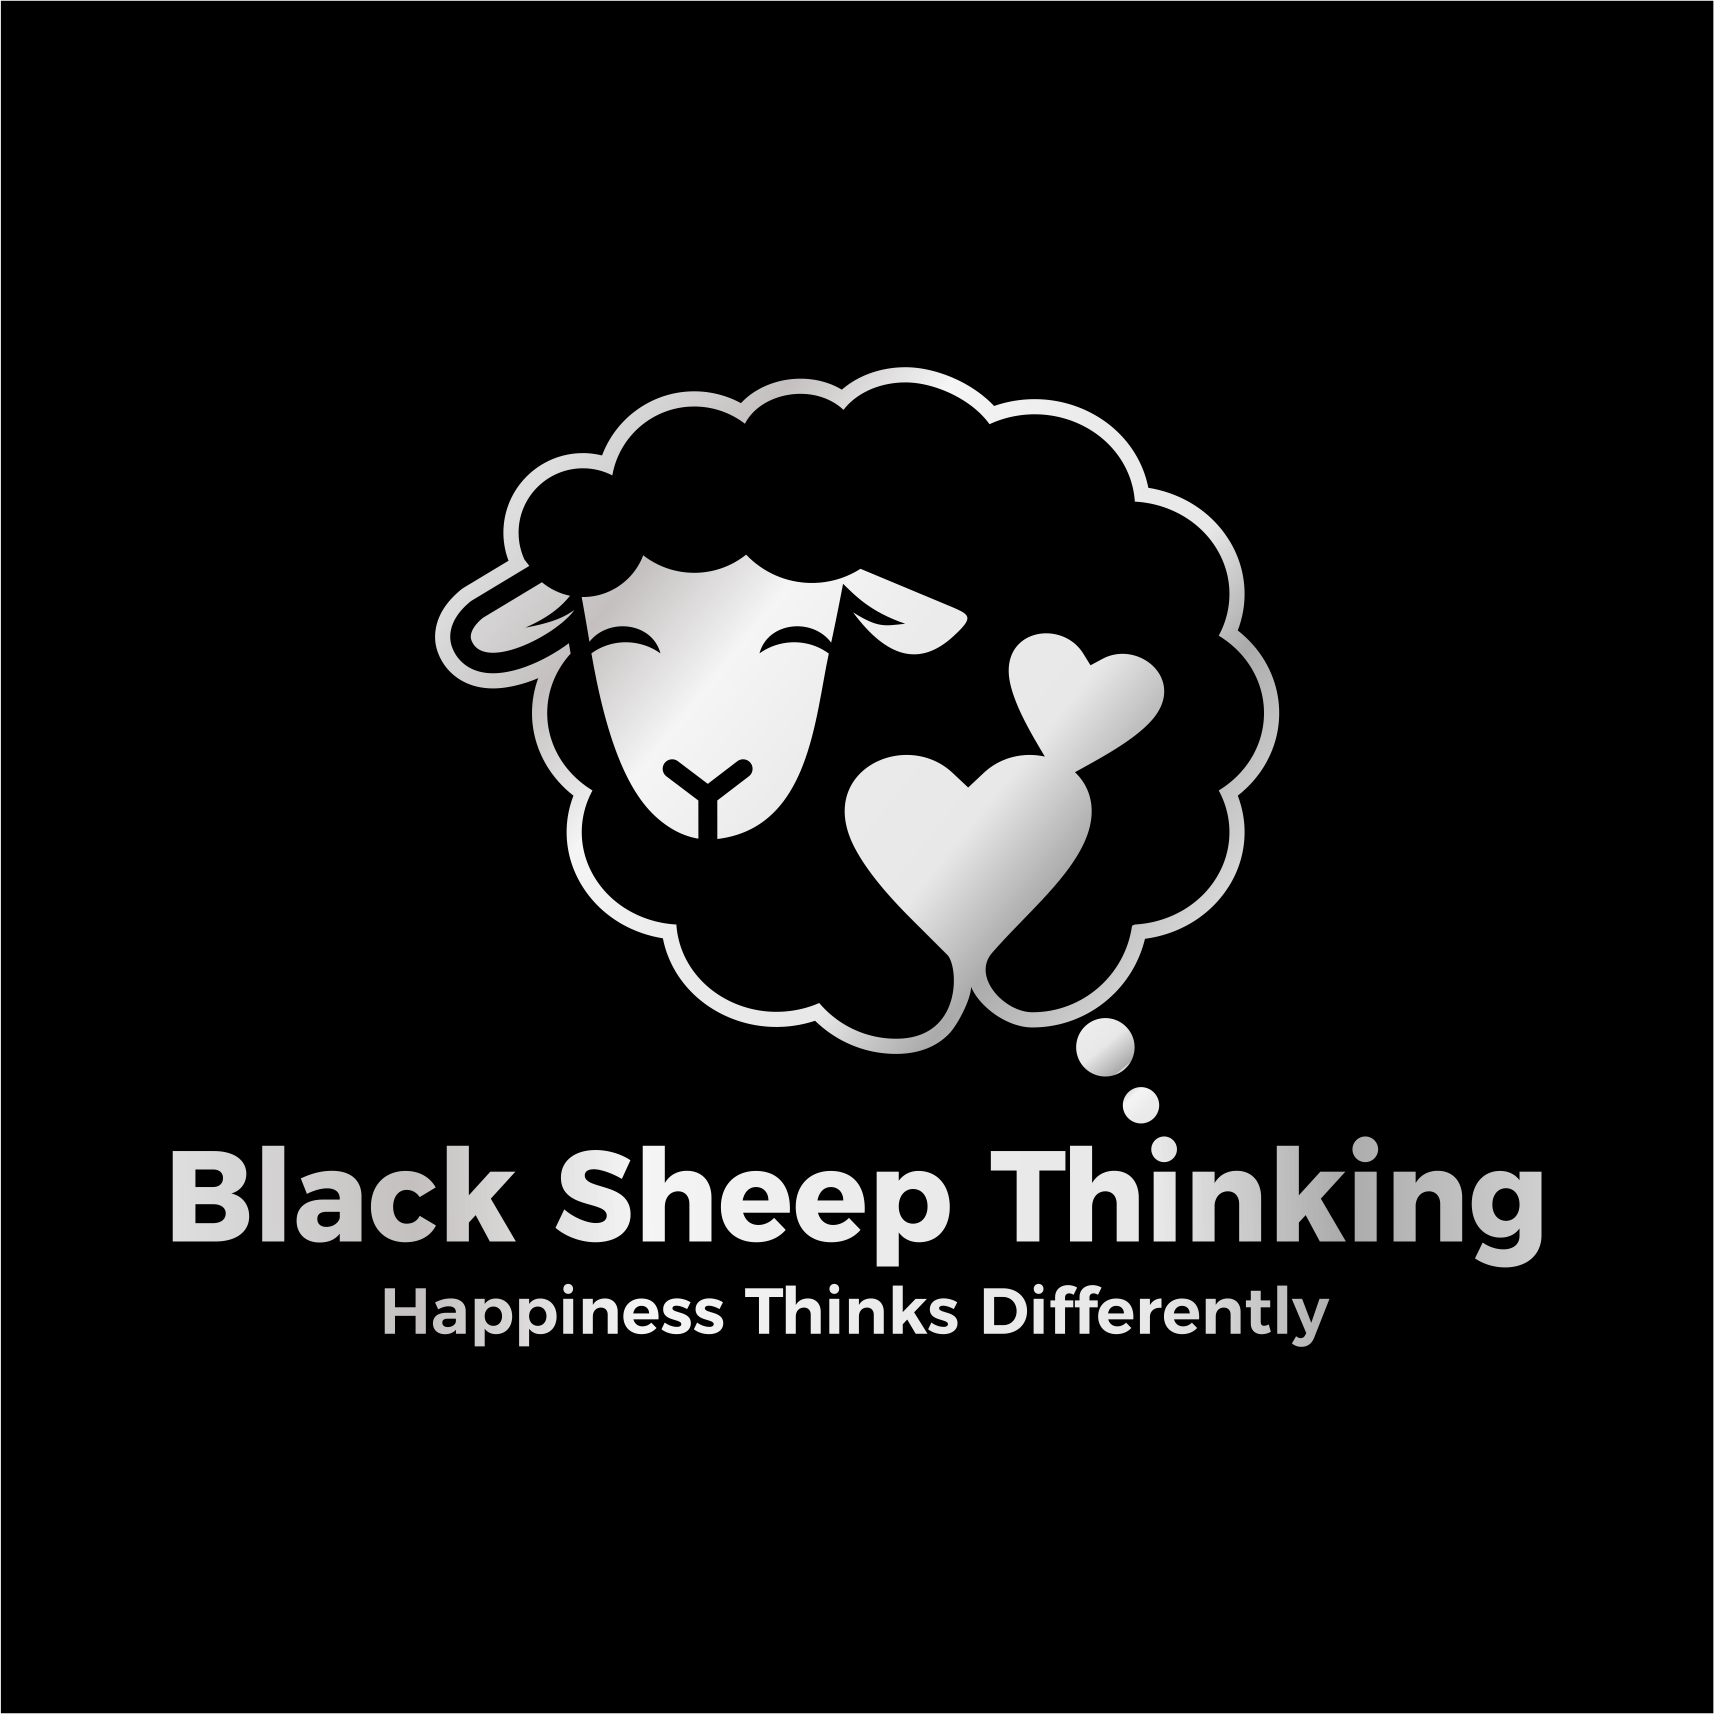 Happiness thinks differently and we need a logo to show that!